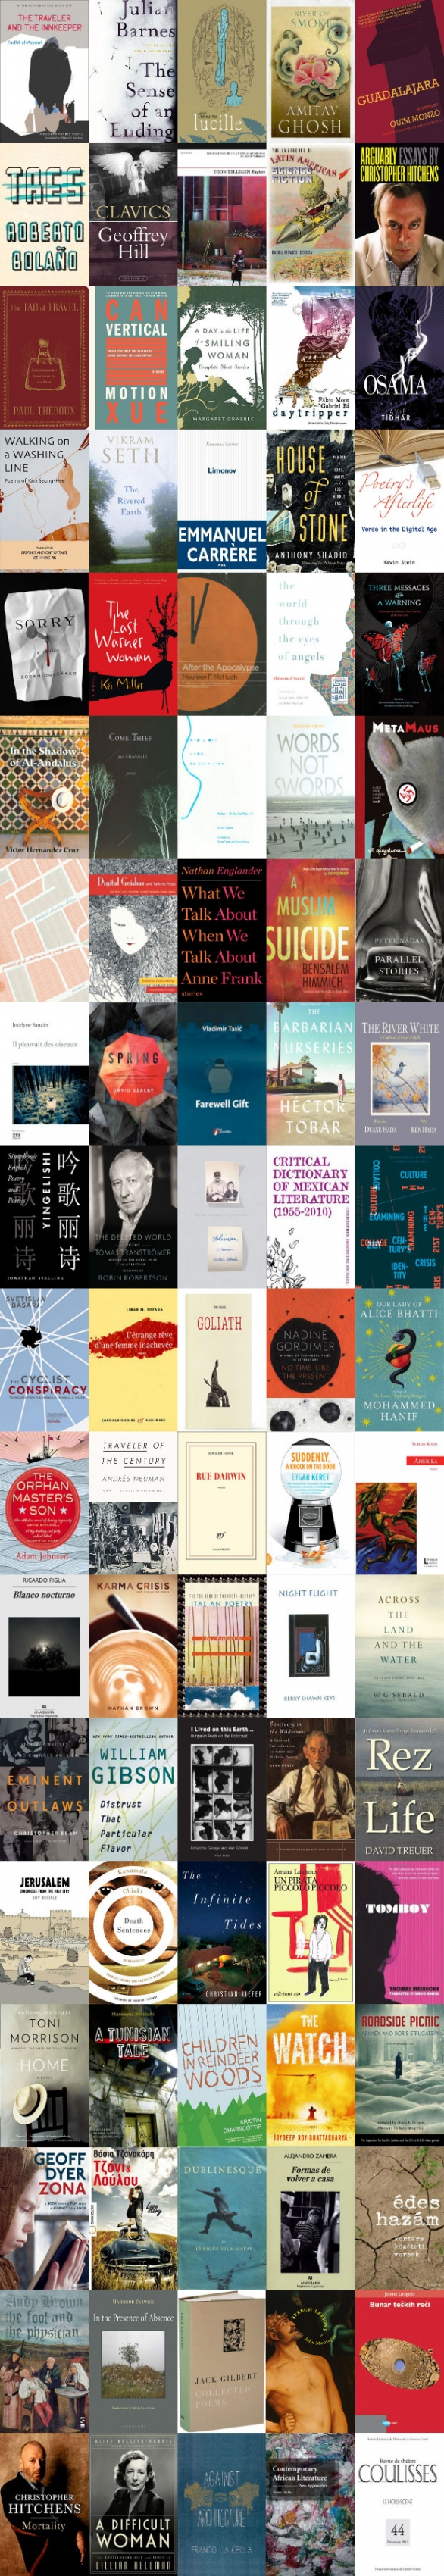 WLT Books Reviewed 2012